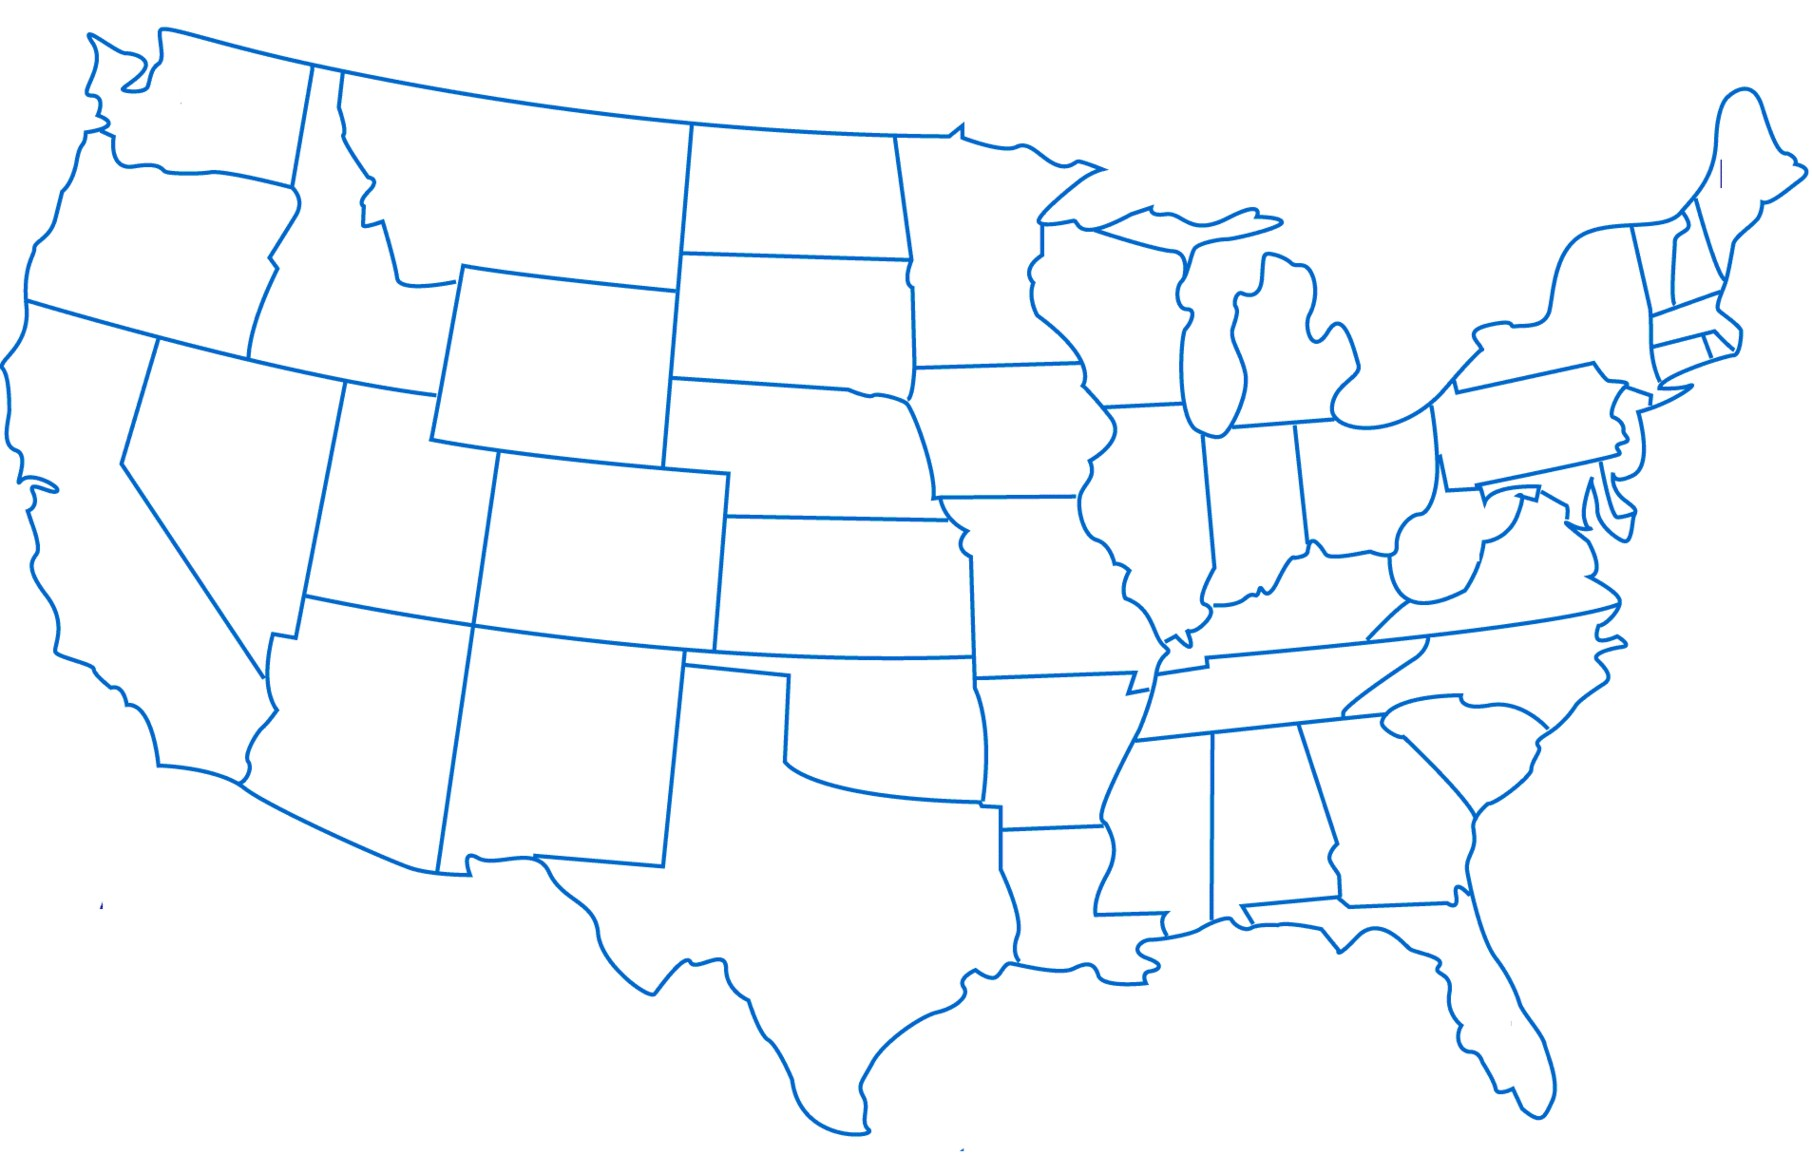 1812x1174 New Sketch Drawing Us Map Online Usa Clipart Blank